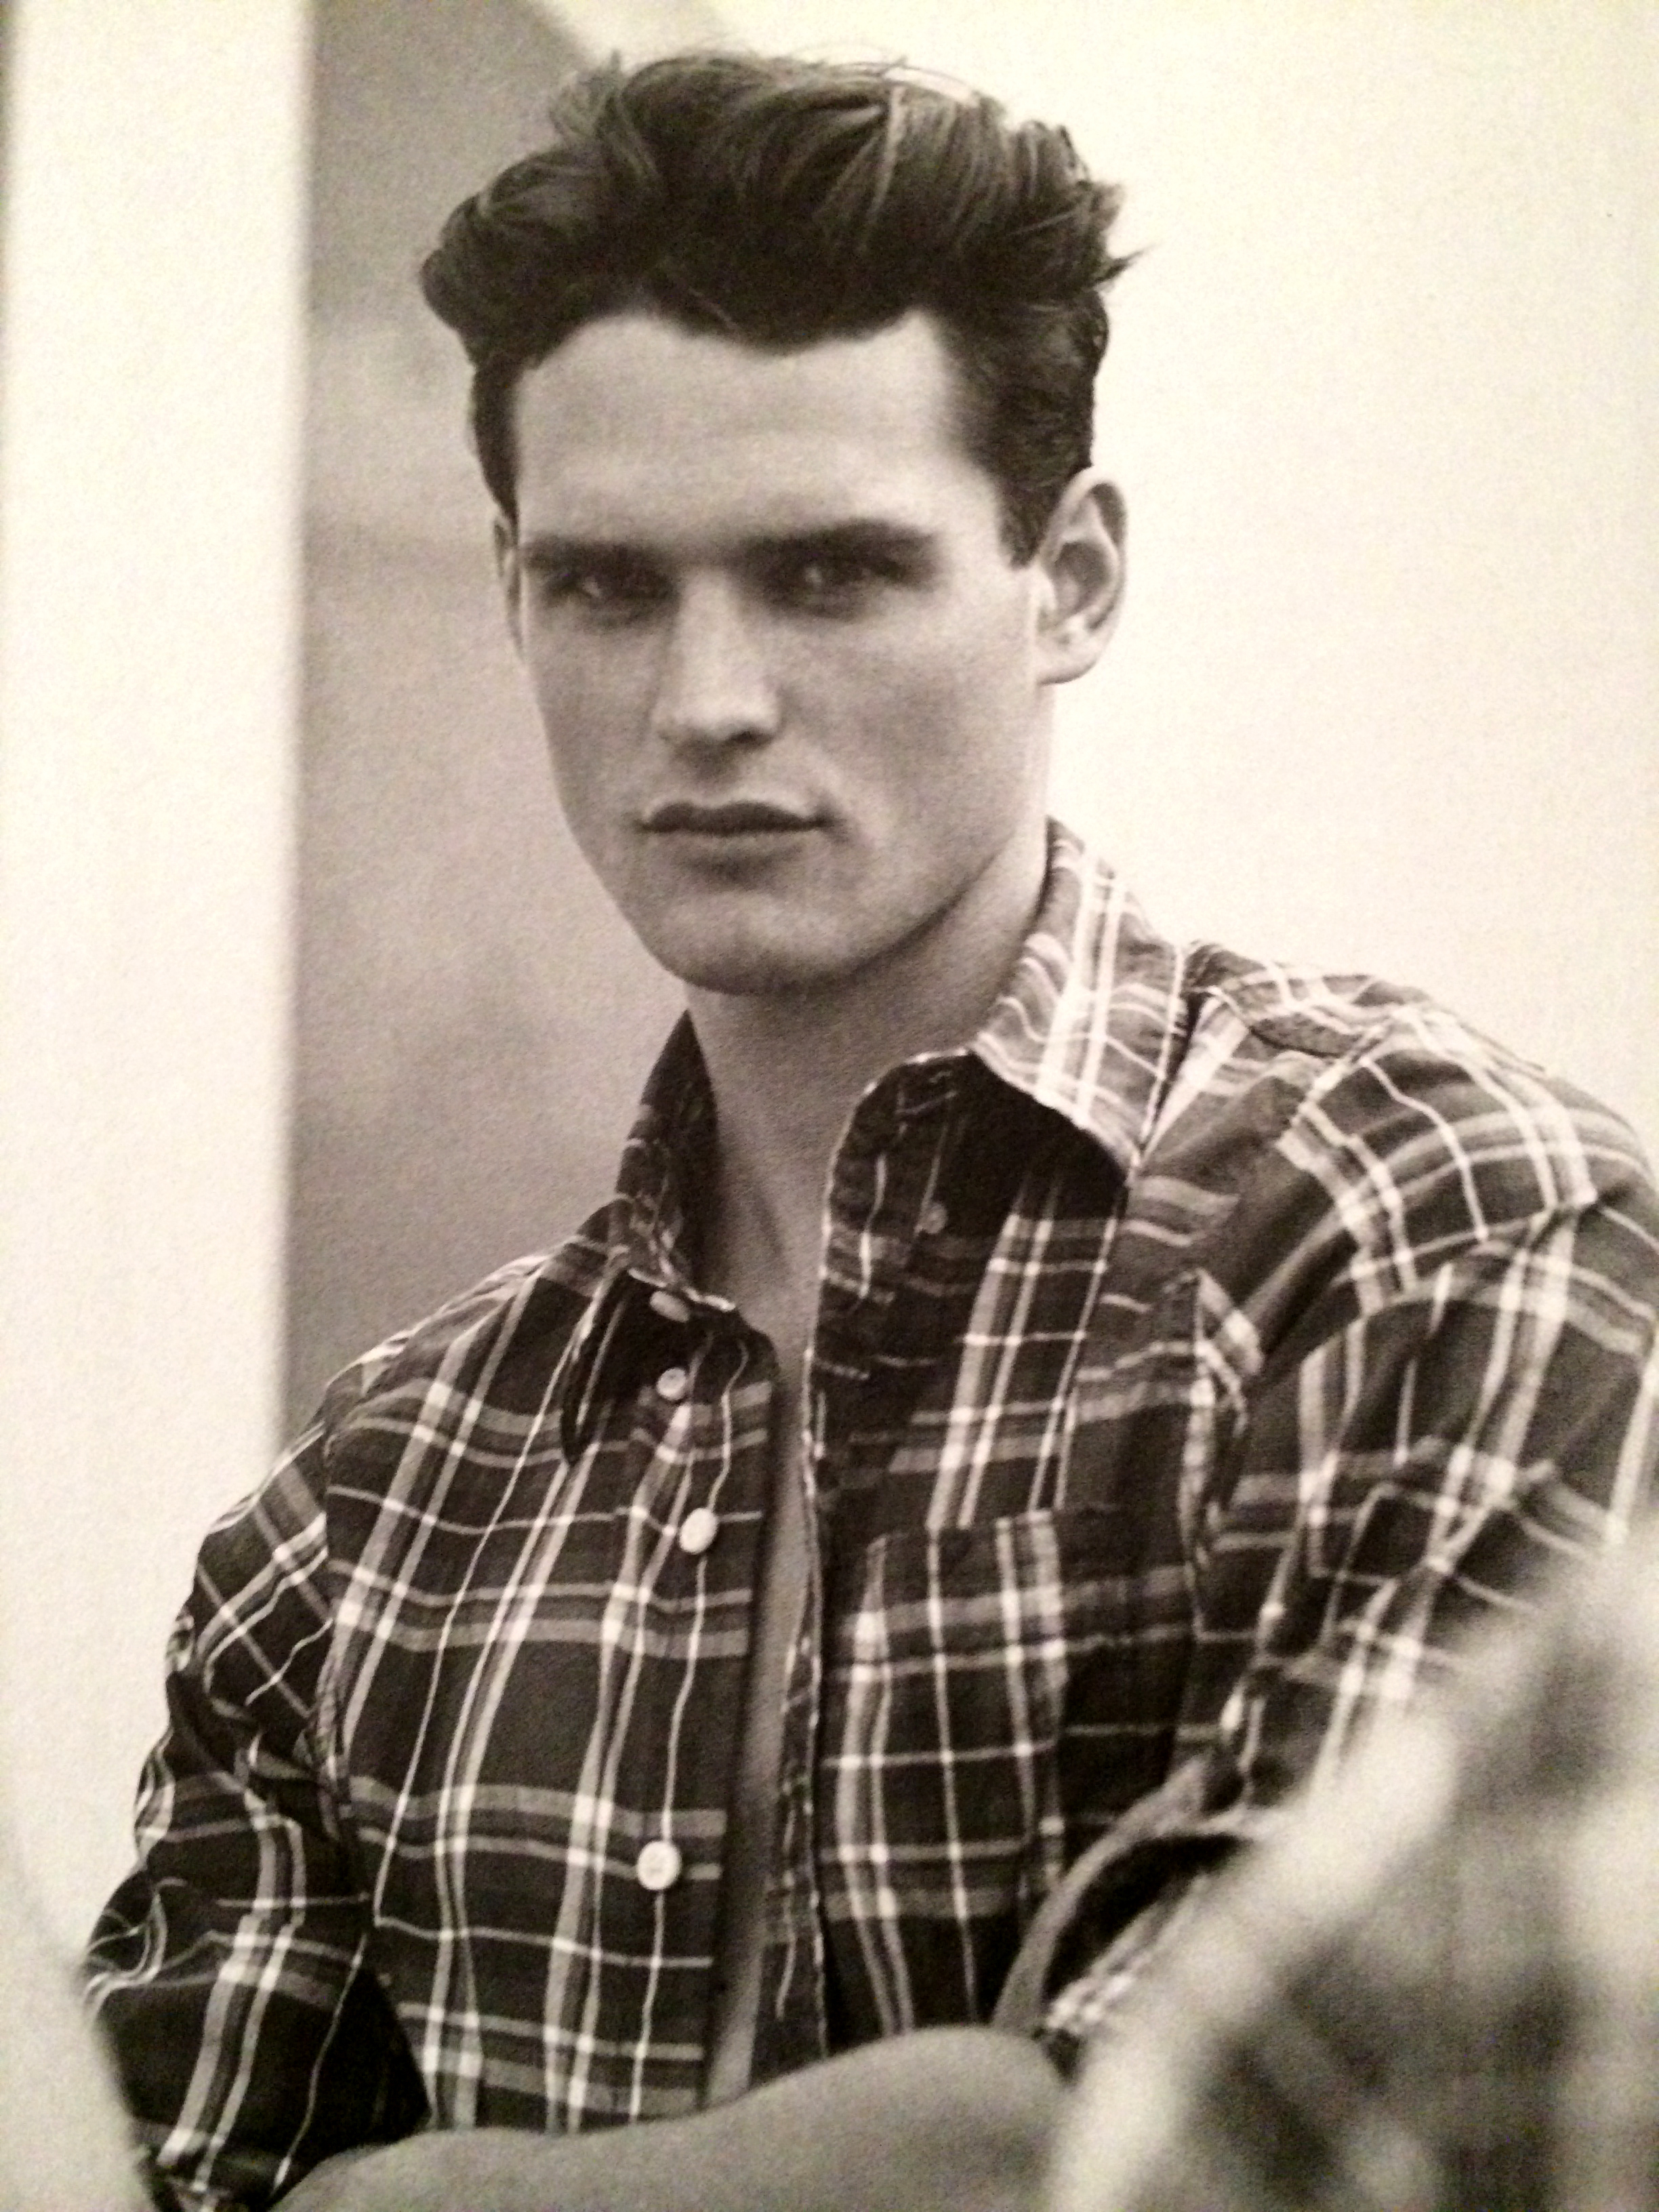 Abercrombie & Fitch  by BRUCE WEBER  Casting by May Charters